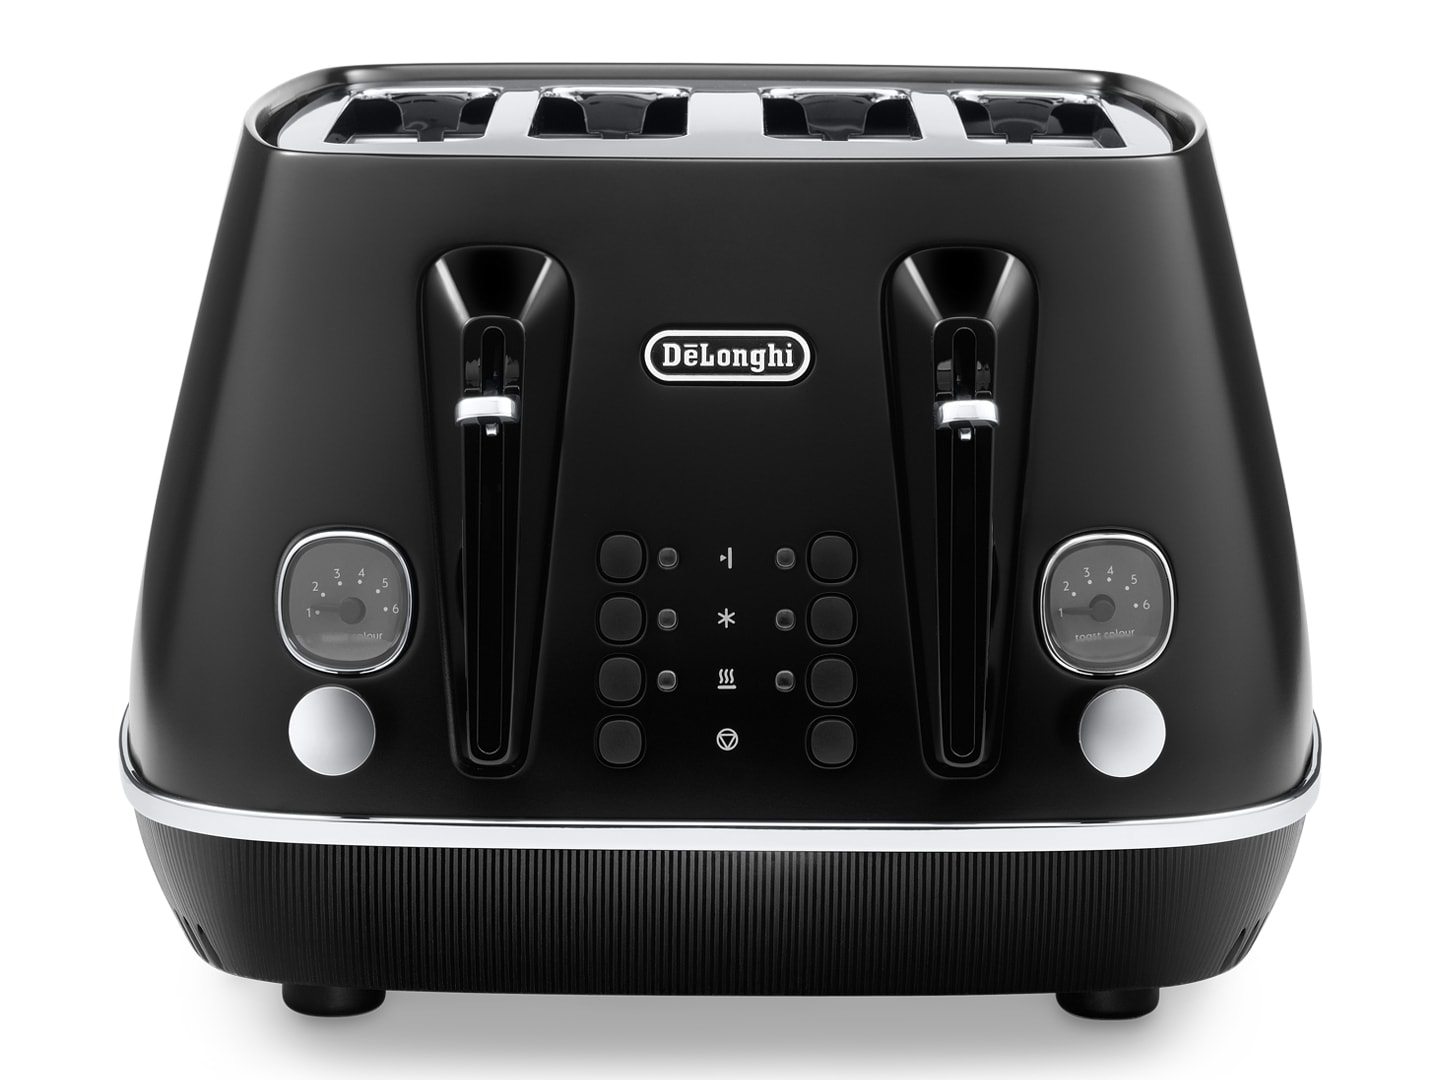 DeLonghi Distinta Moments 4 Slice Toaster Black CTIN4003.BK